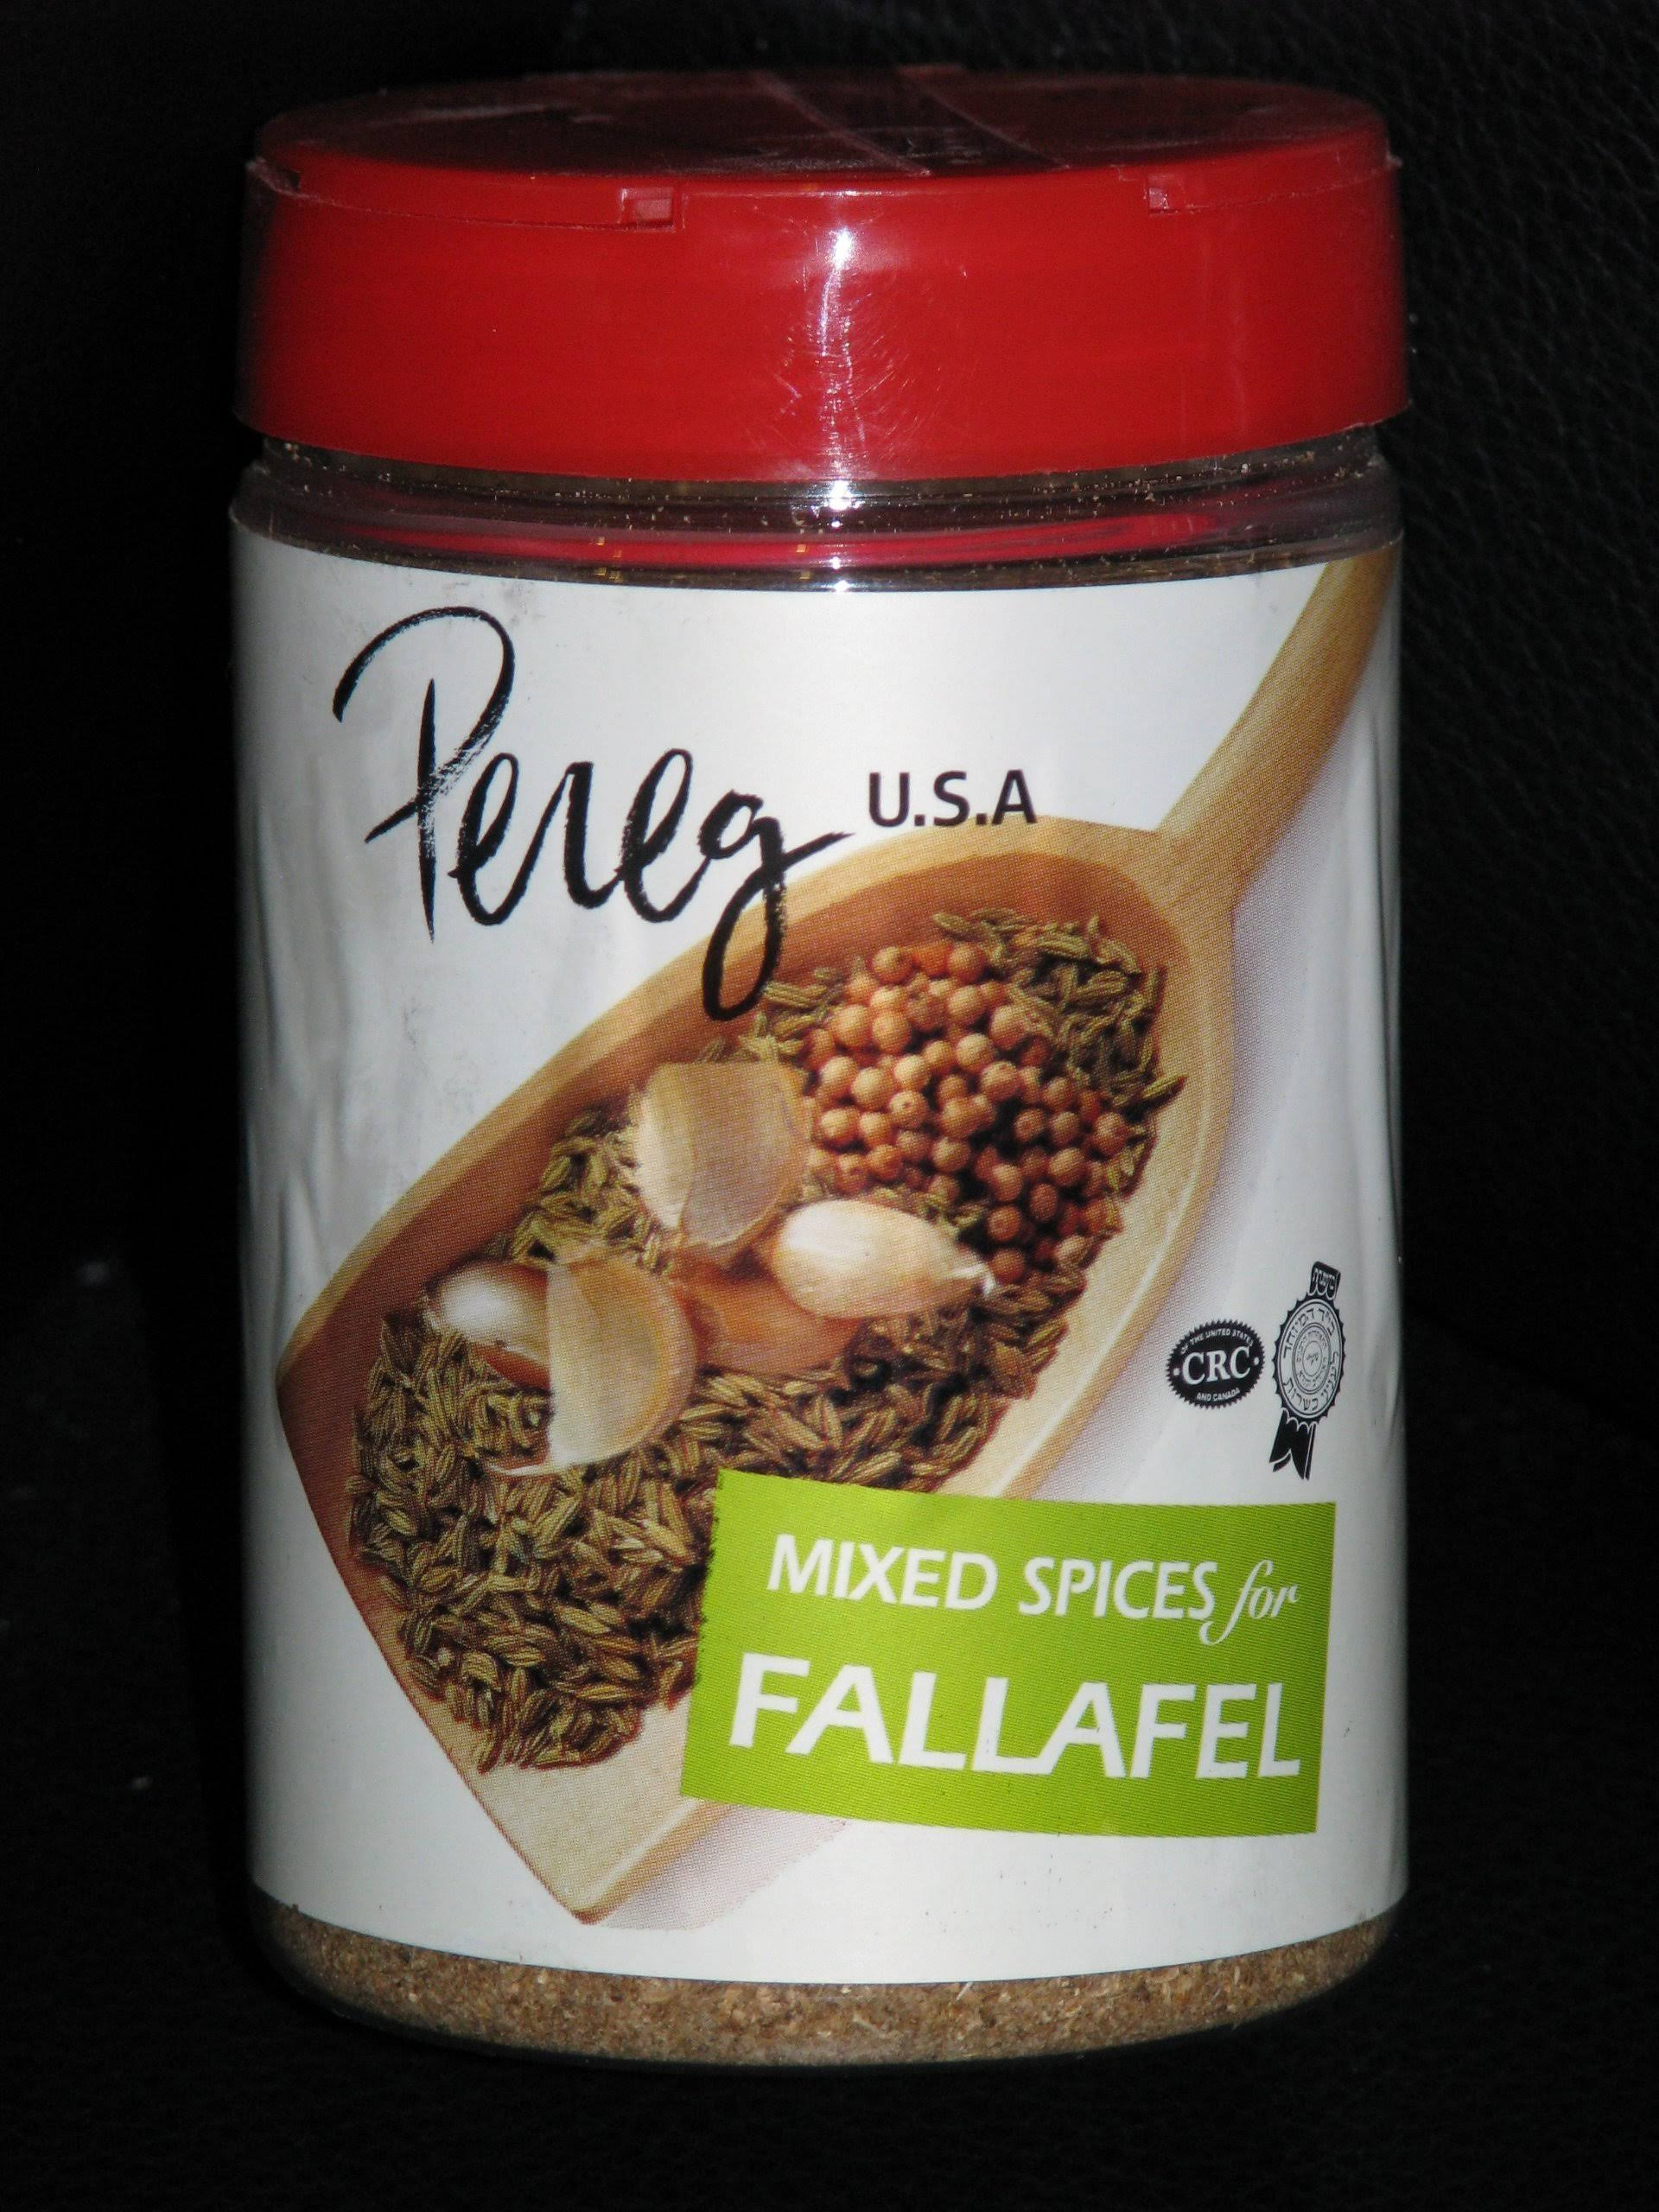 Pereg Mixed Spices, Falafel - 4.2 oz jar